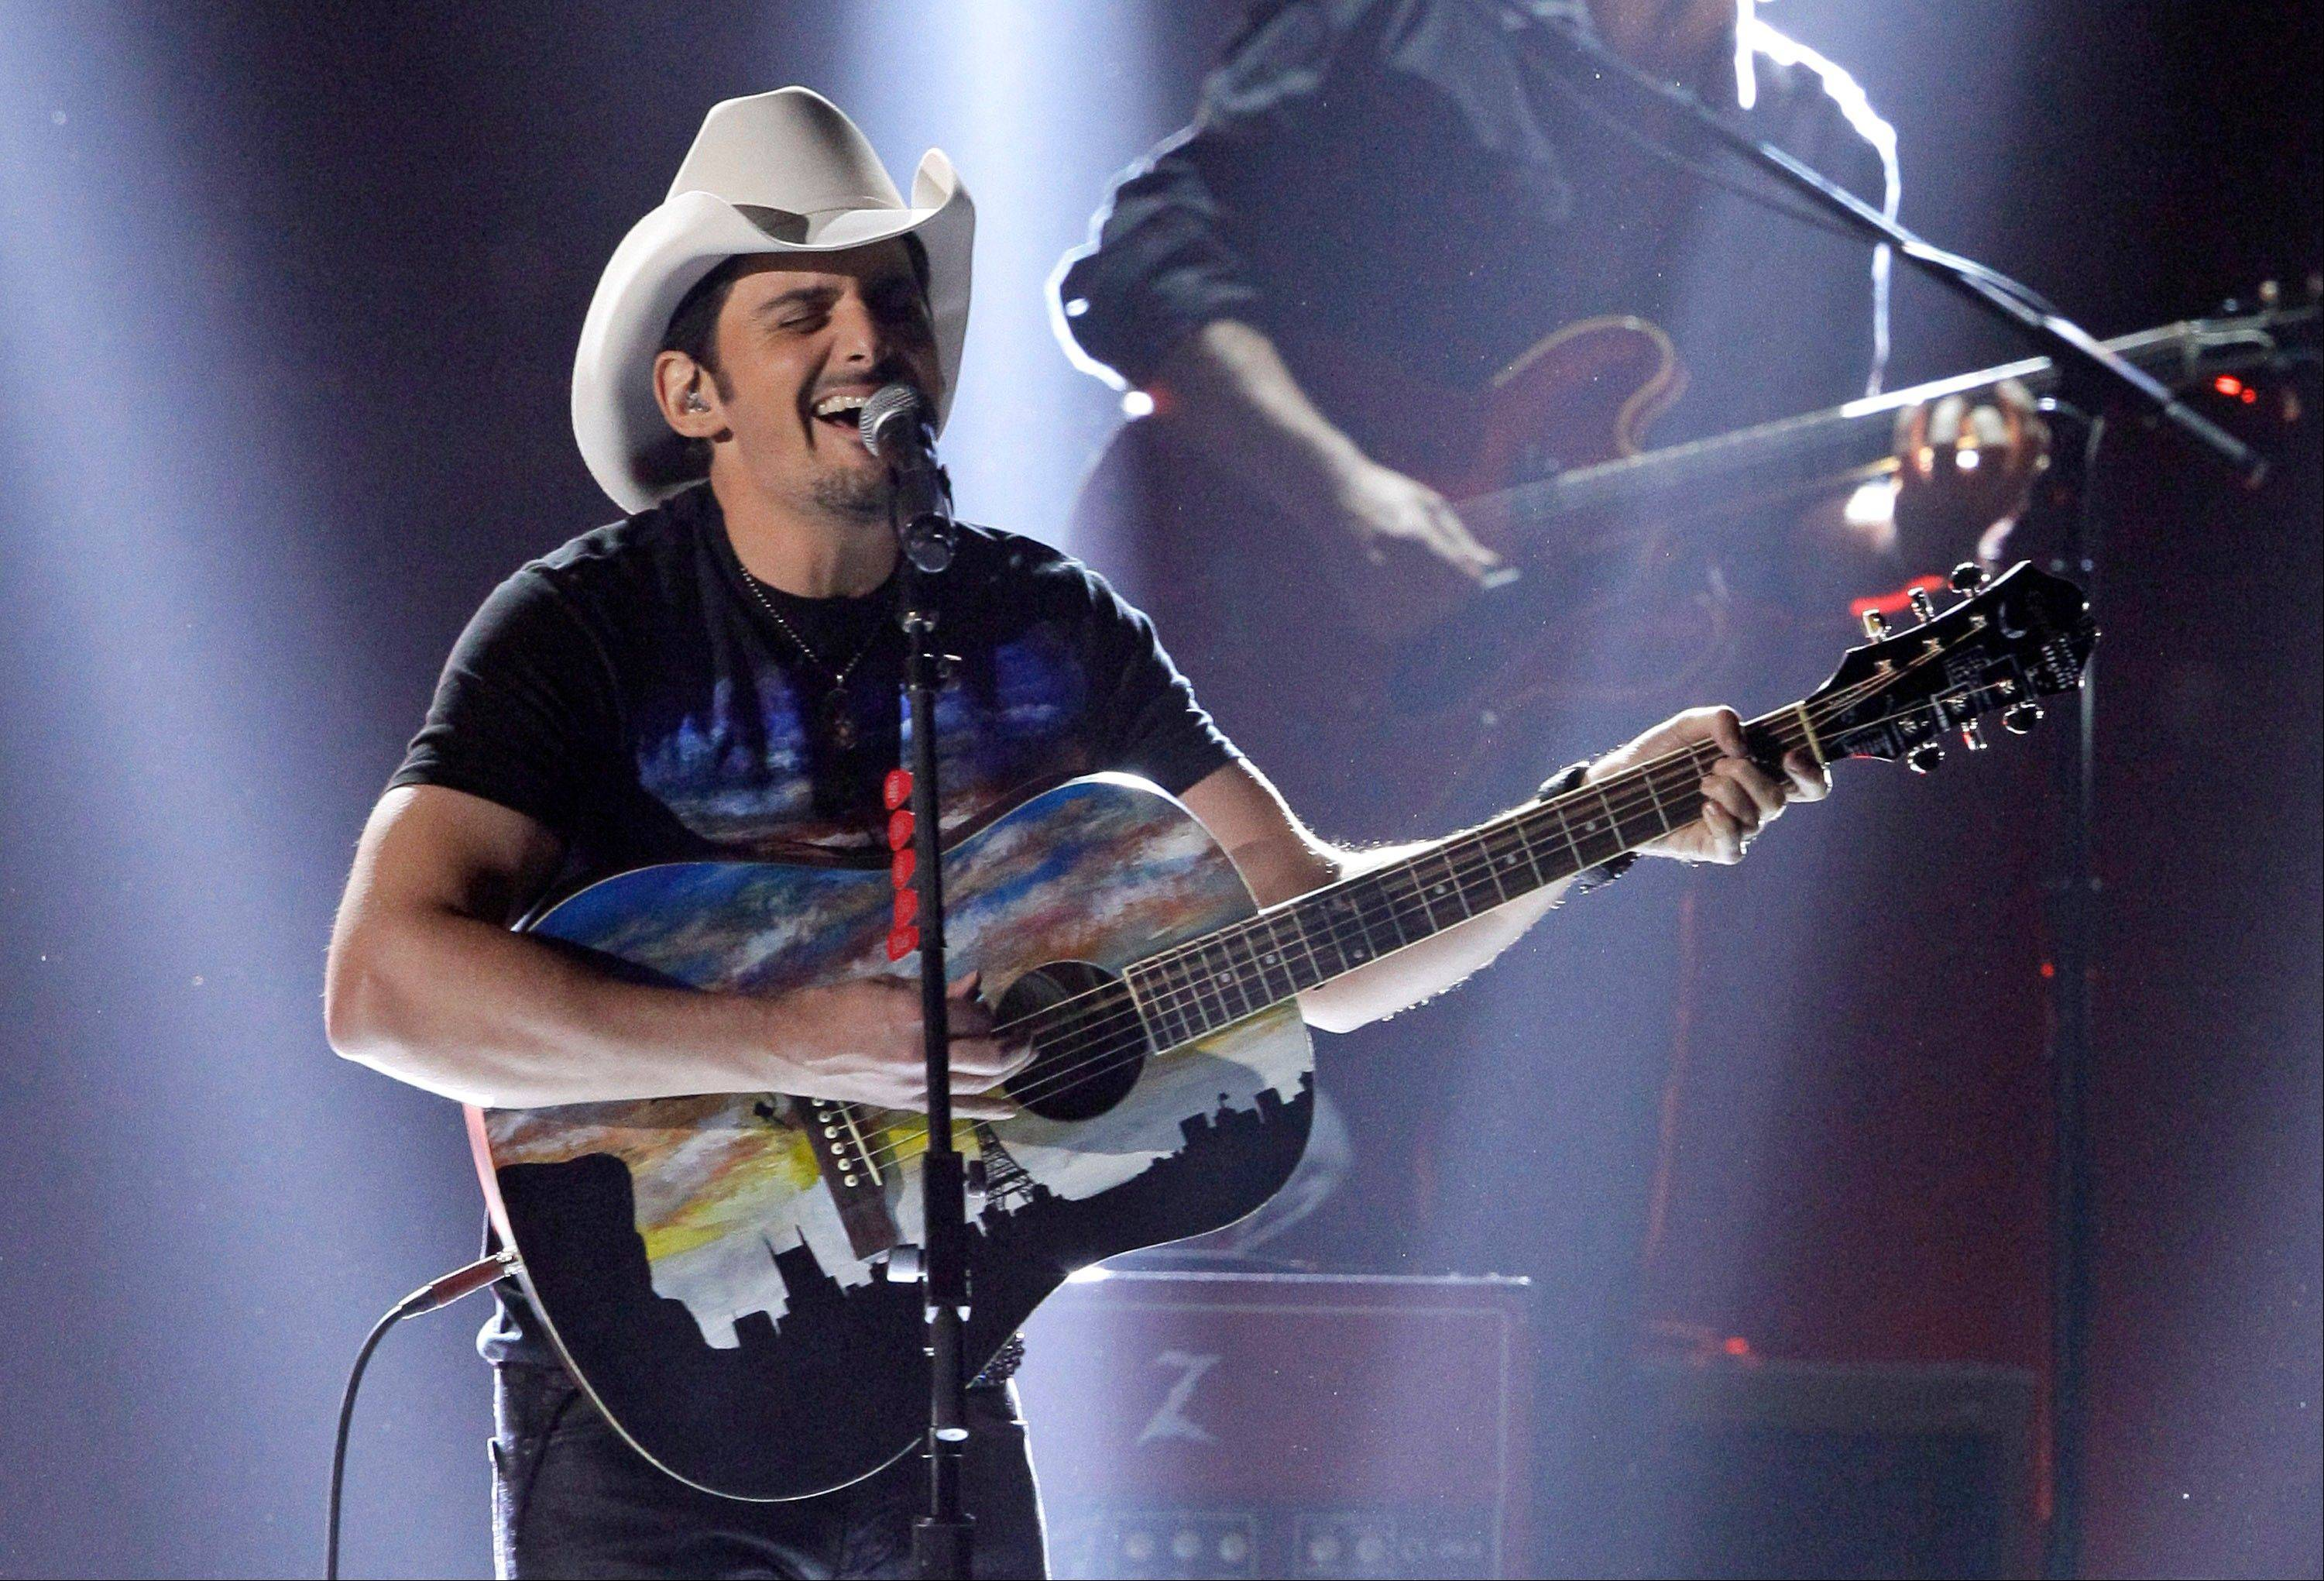 Brad Paisley performs onstage at the 46th Annual Country Music Awards at the Bridgestone Arena on Thursday, Nov. 1, 2012, in Nashville, Tenn.